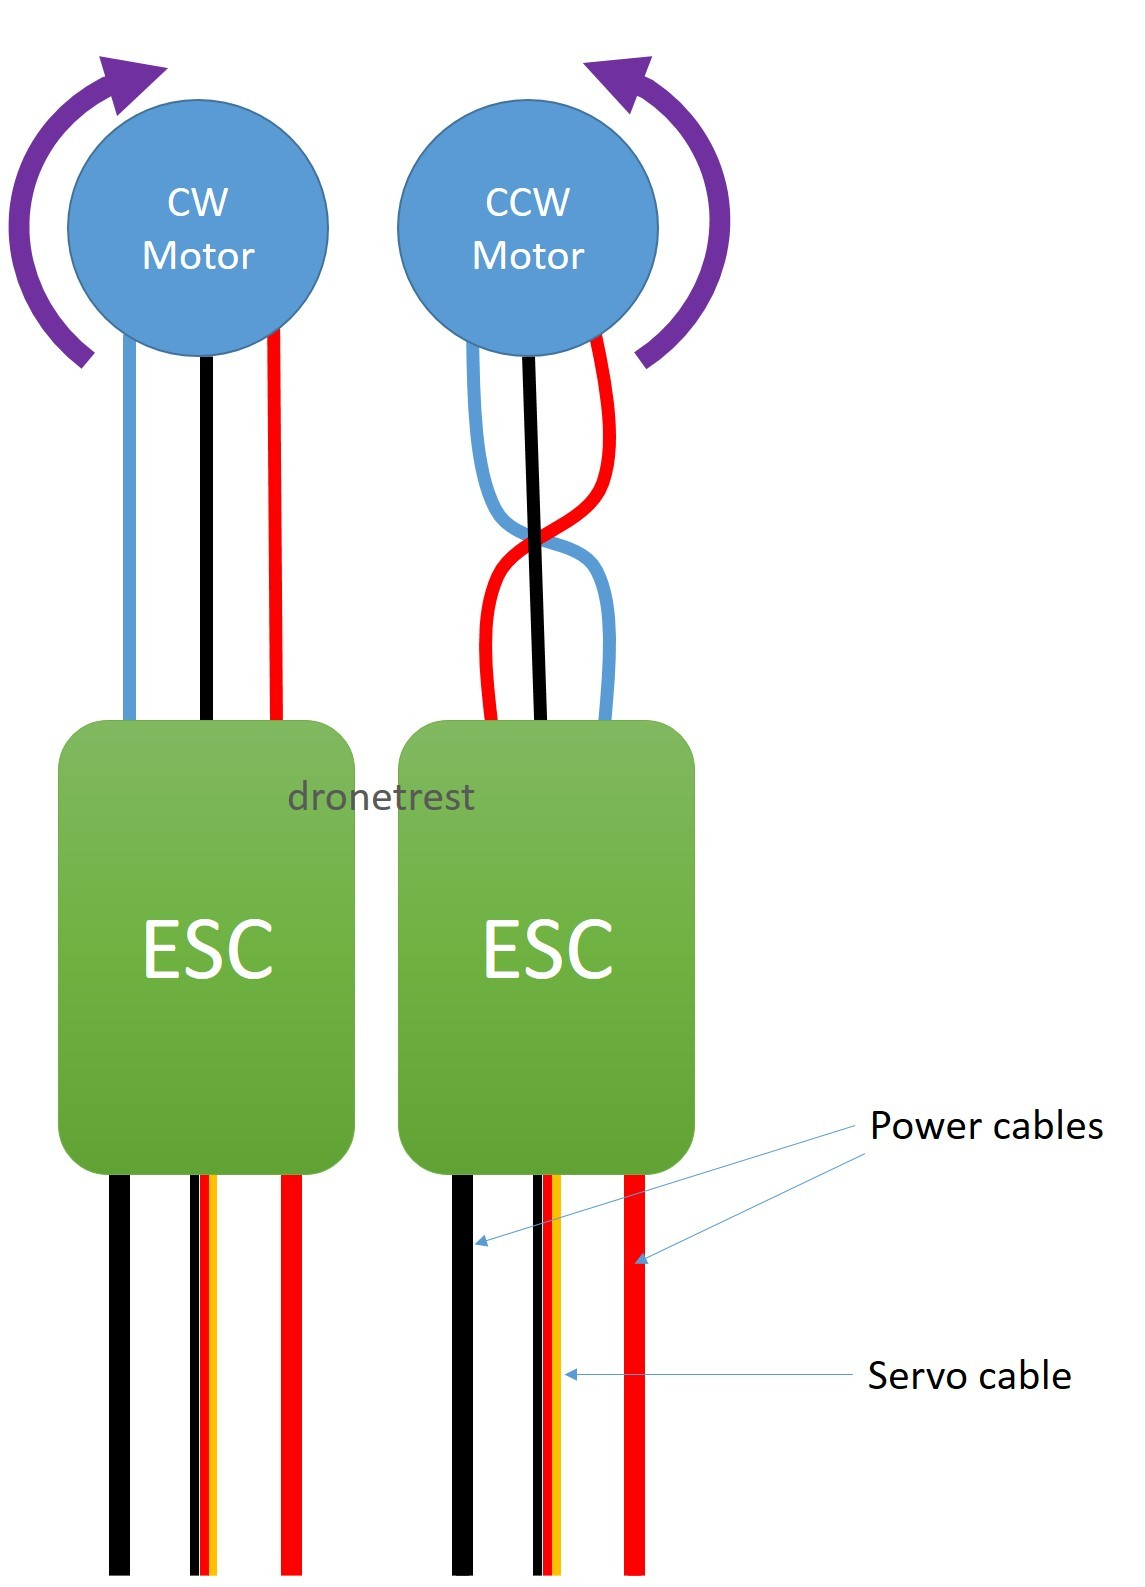 Esc To Motor Connection Guide How Reverse Your Direction. Motor To Esc Guide1145x1587 104 Kb. Wiring. Drone Esc Wiring Diagram At Scoala.co